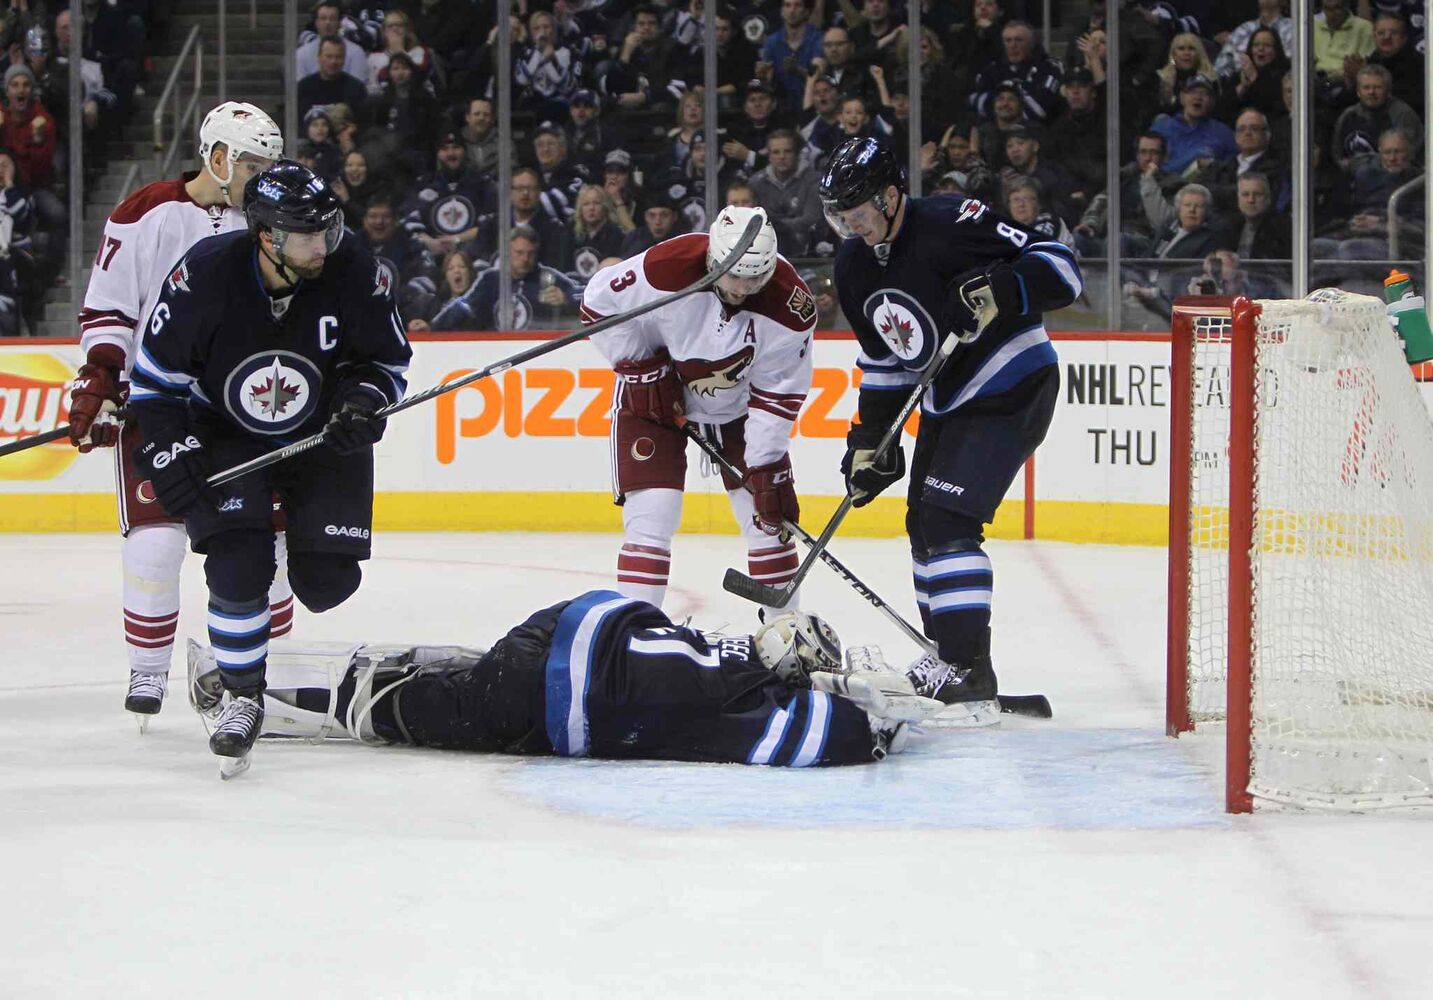 Winnipeg Jets Ondrej Pavelec makes an overtime save against the Phoenix Coyotes in Winnipeg Thursday. (Ruth Bonneville / Winnipeg Free Press)